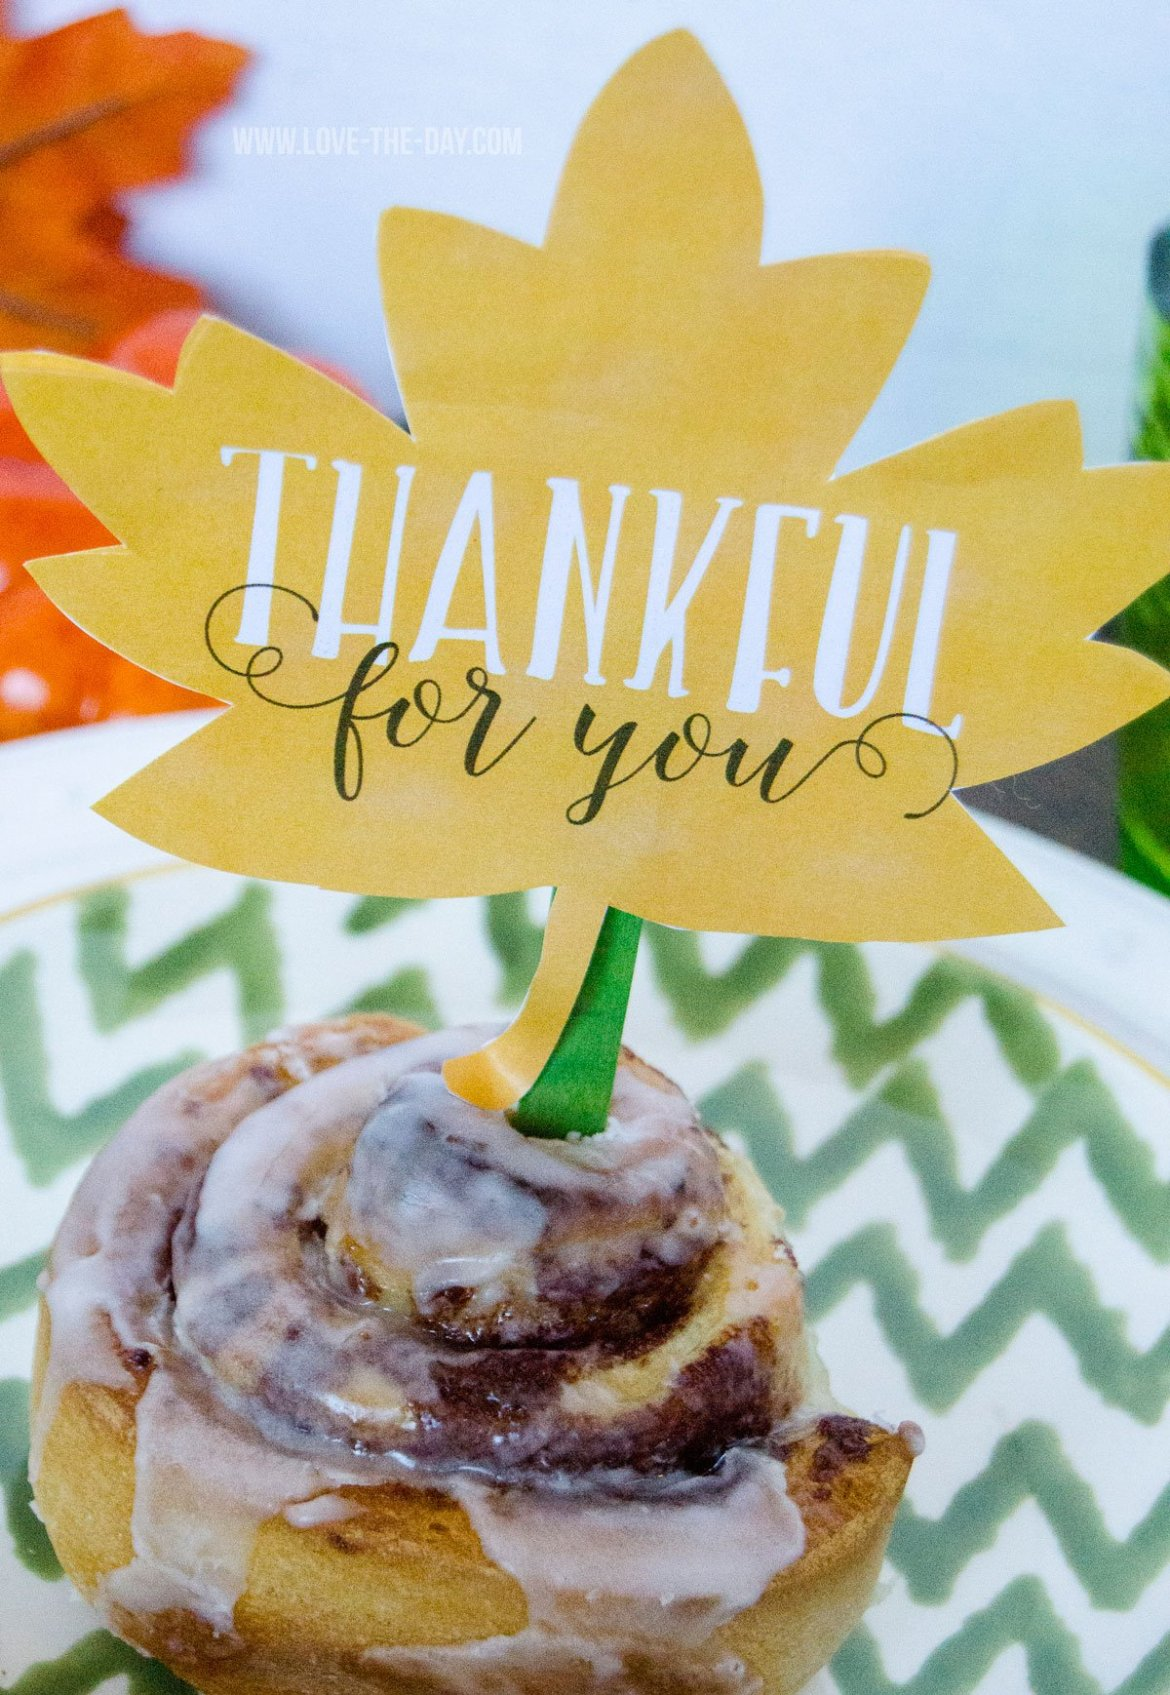 FREE 'Thankful For You' Leaf Printable by Love The Day